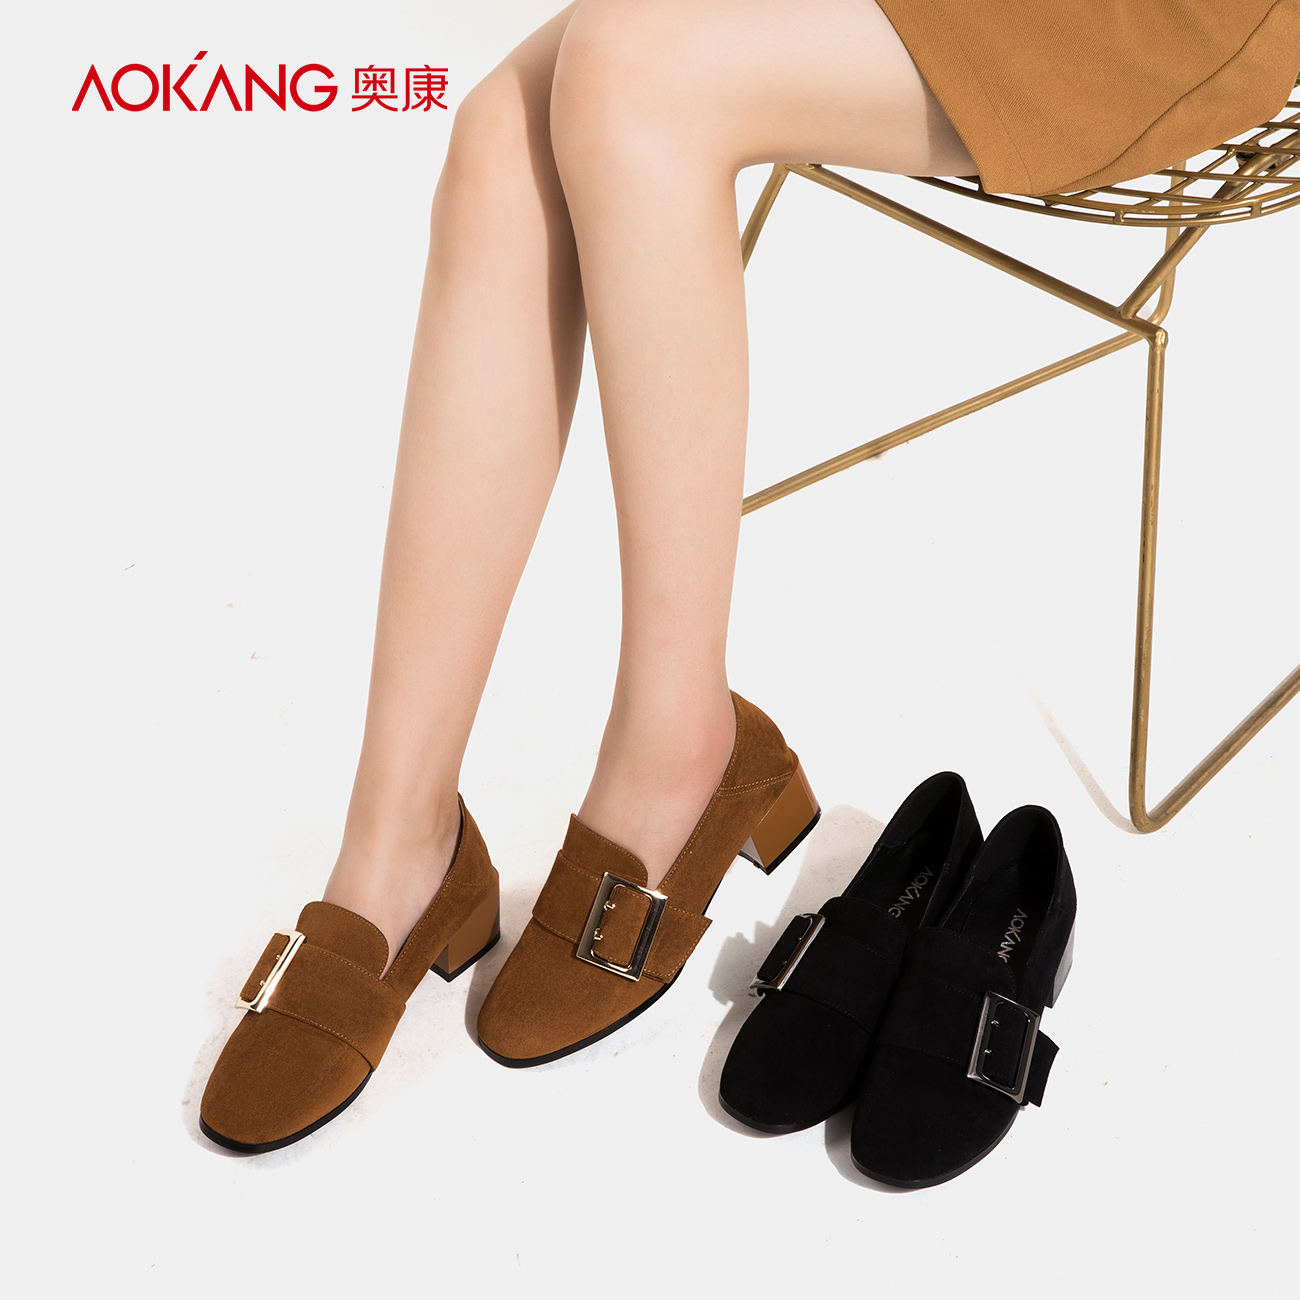 Aokang women's shoes 2018 autumn new anti-down sets of feet single shoes women's head deep mouth thick with low to help fashion women's shoes